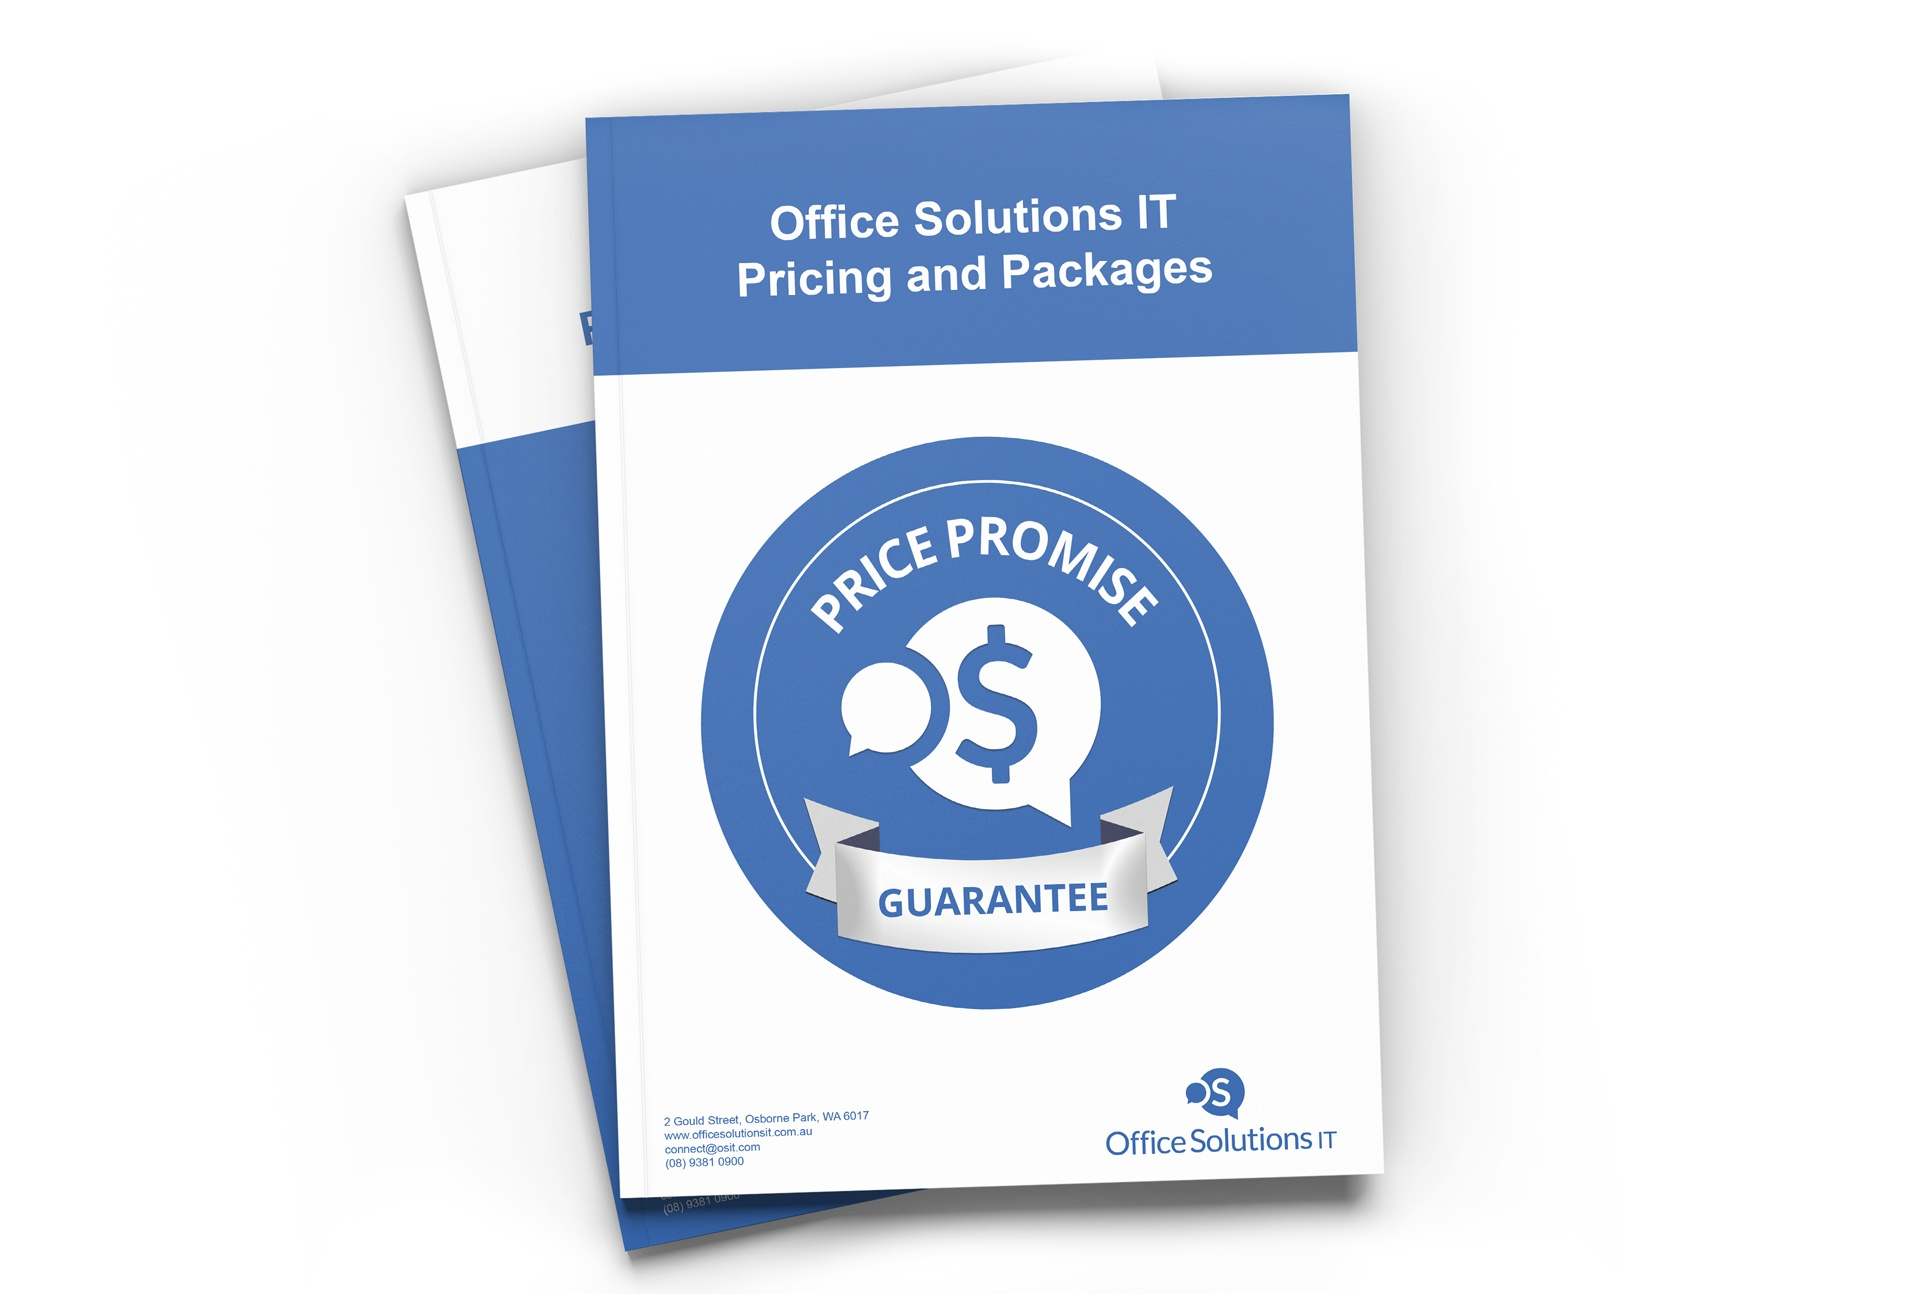 Office-Solutions-IT-Price-Promise